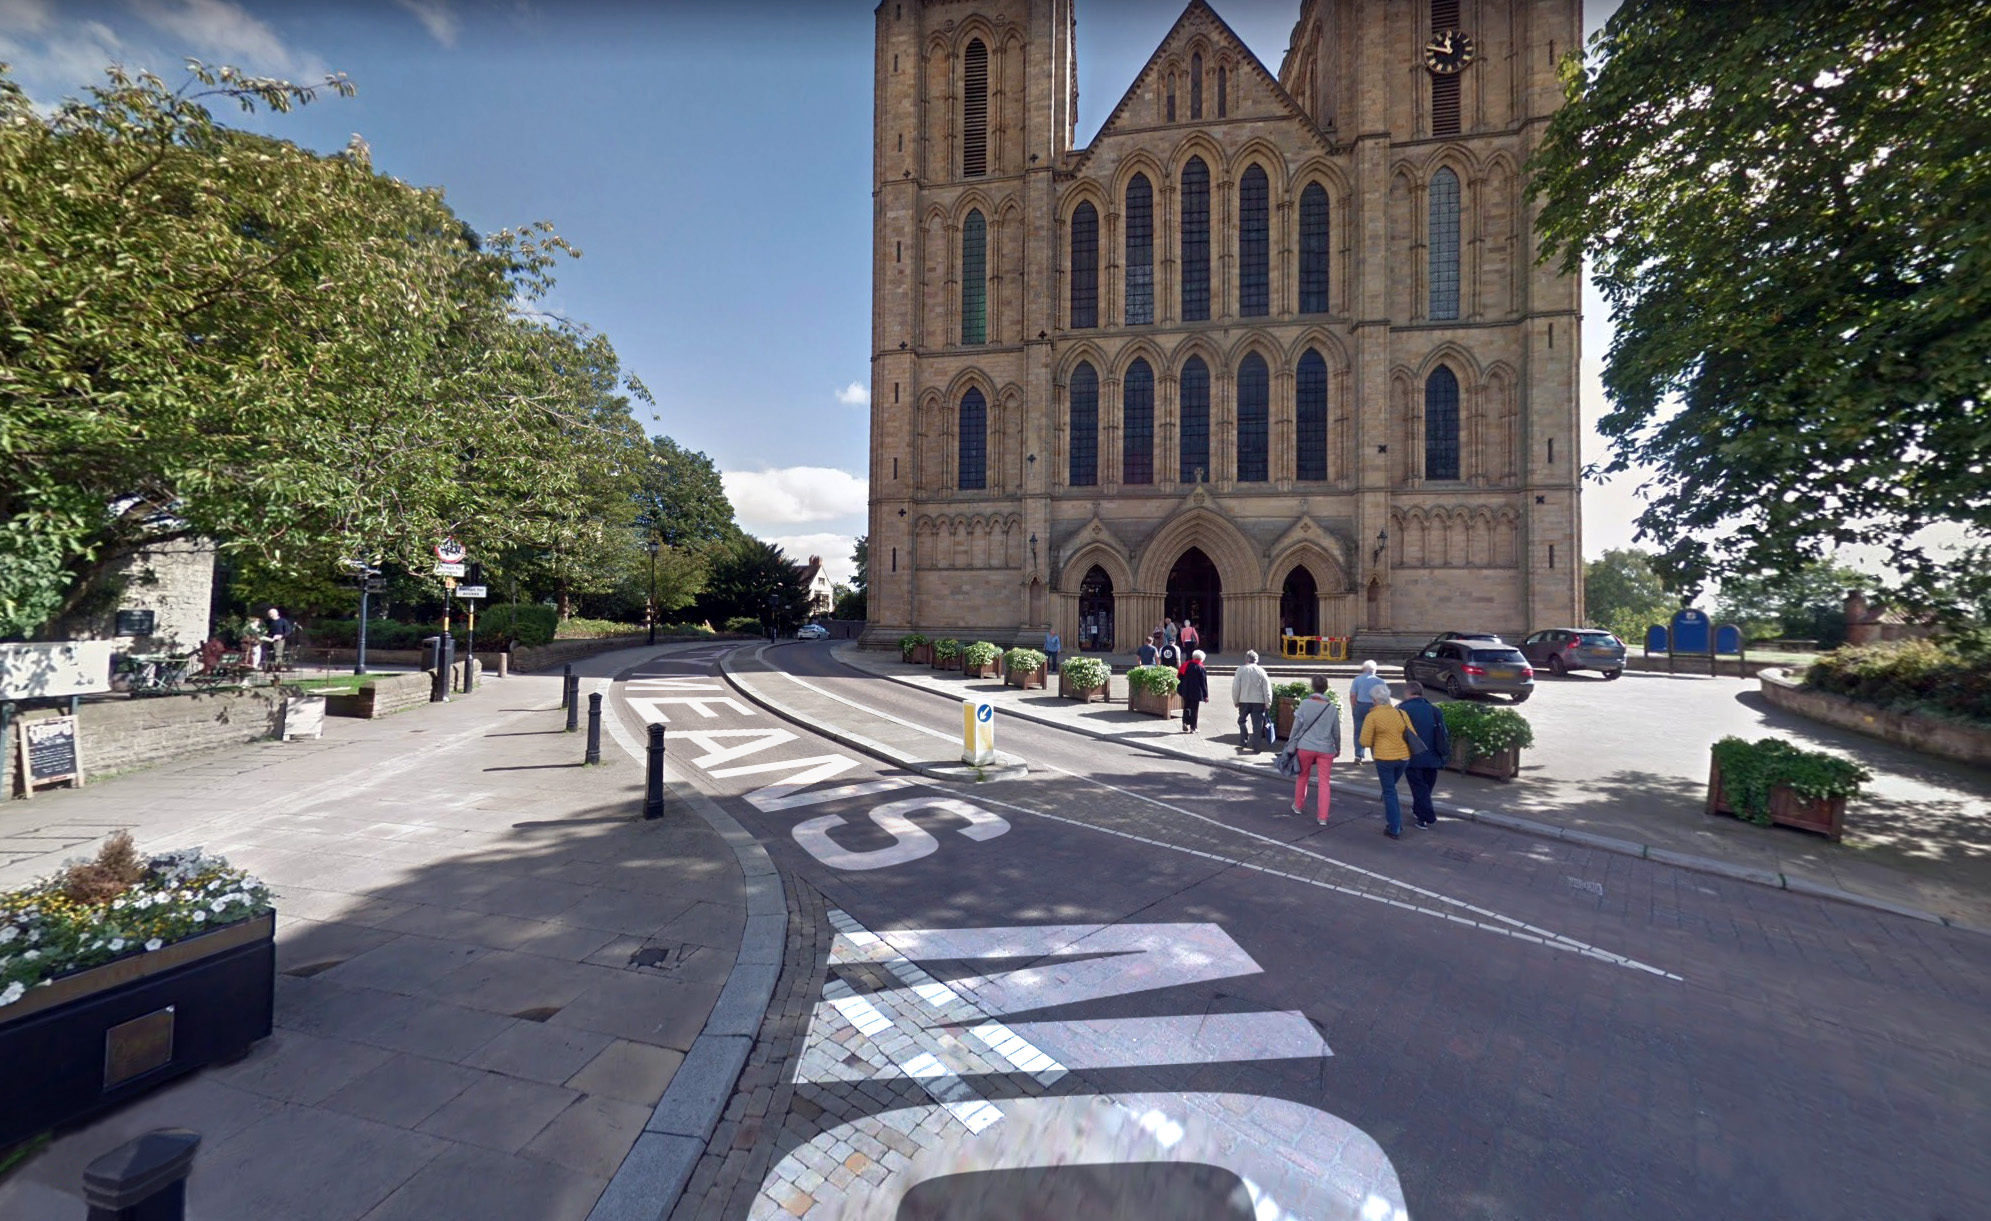 Photograph of Ripon Cathedral with large white floor graphics